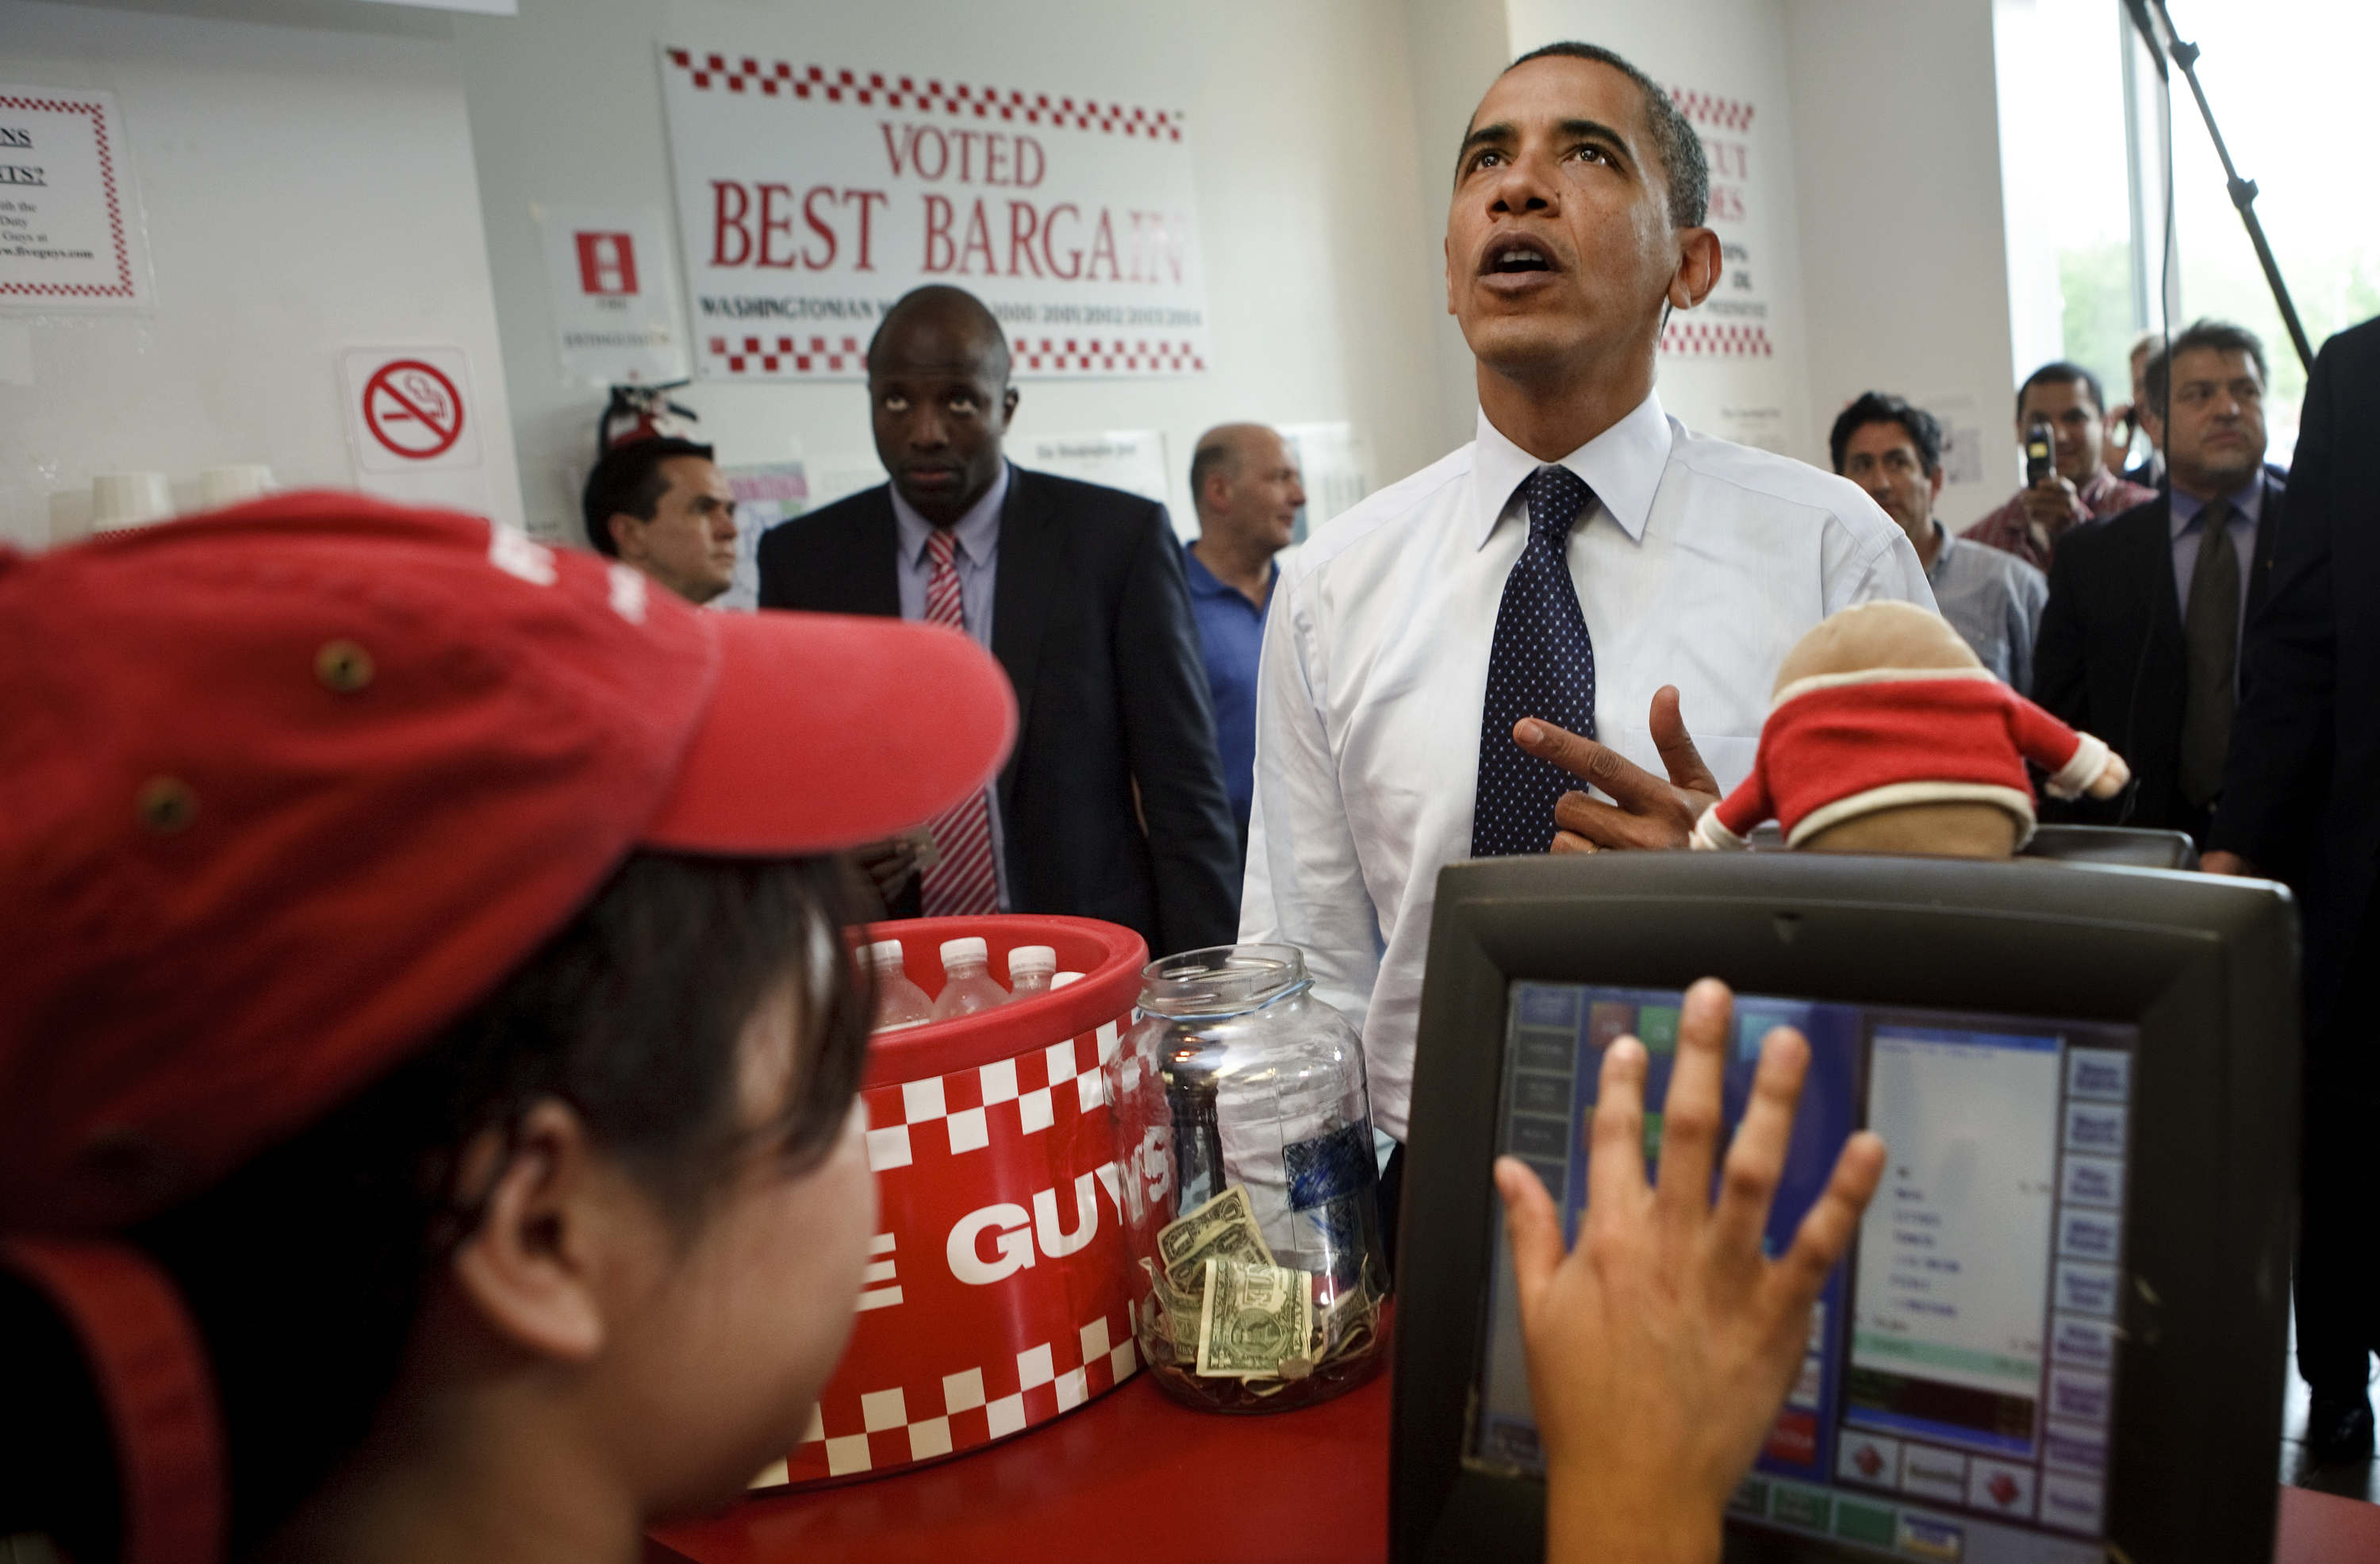 President Obama Visits Local Five Guys Burger Restaurant